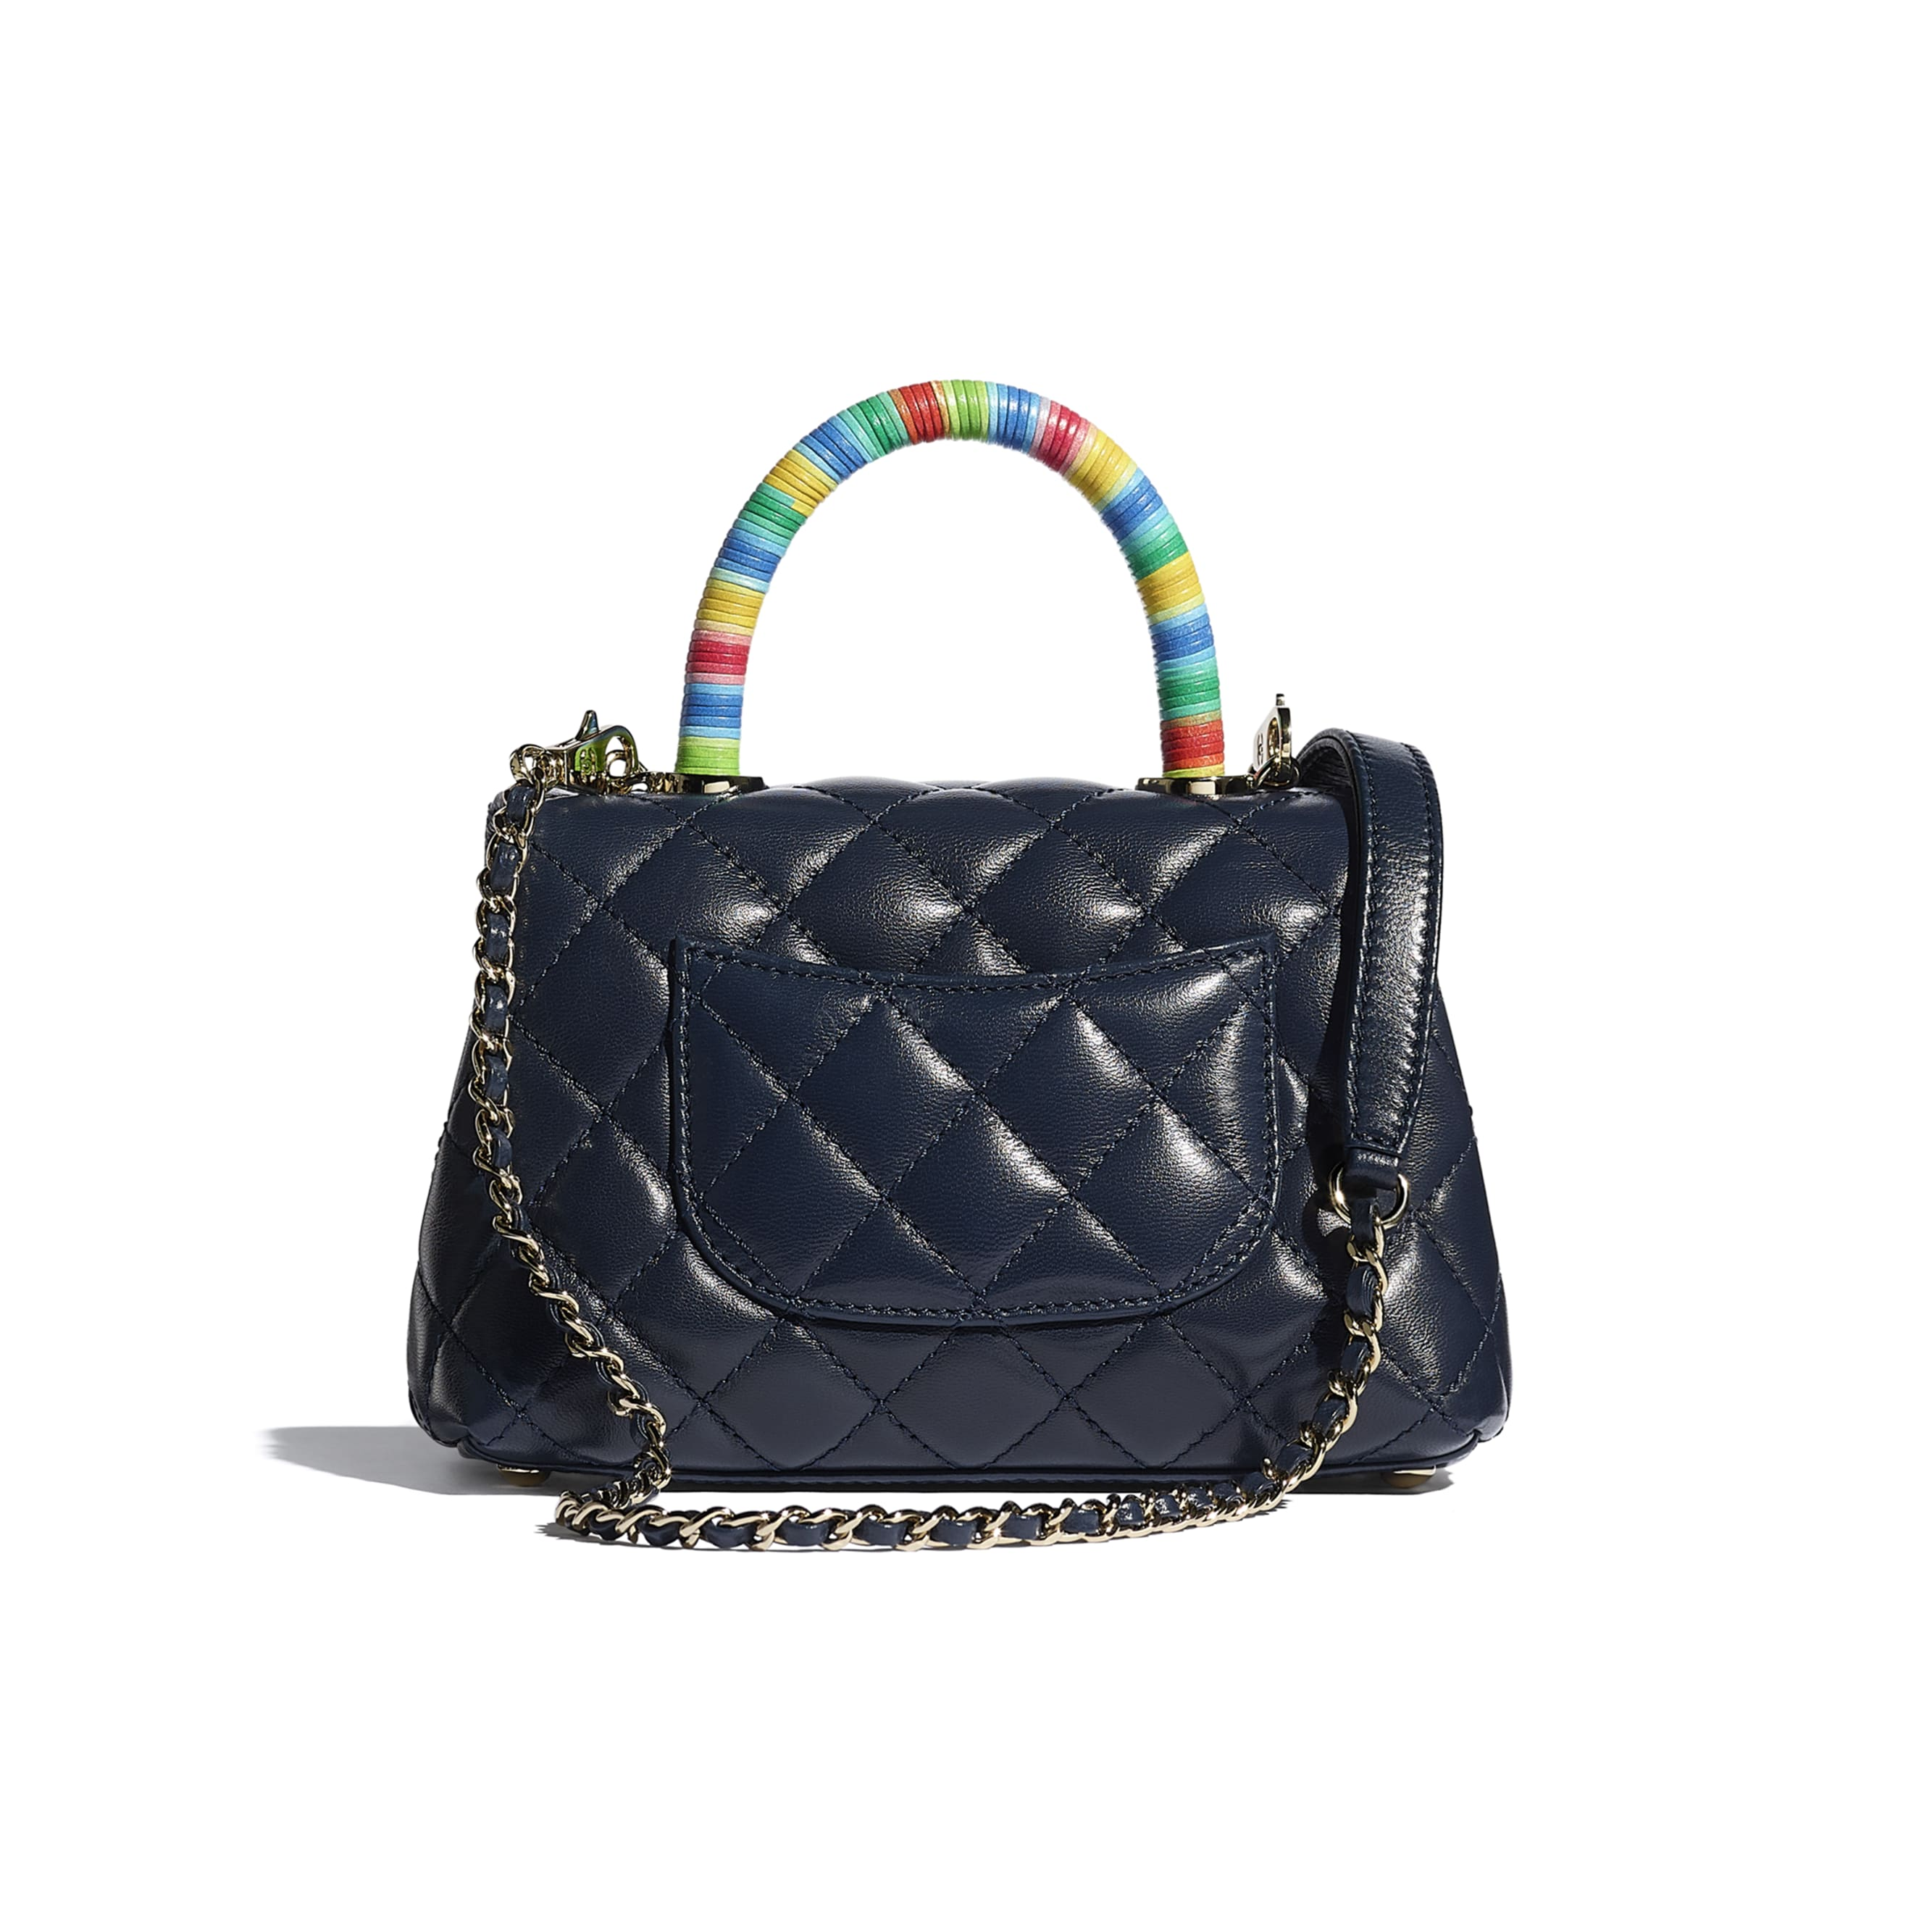 Mini Flap Bag with Top Handle - Navy Blue - Goatskin & Gold-Tone Metal - CHANEL - Alternative view - see standard sized version